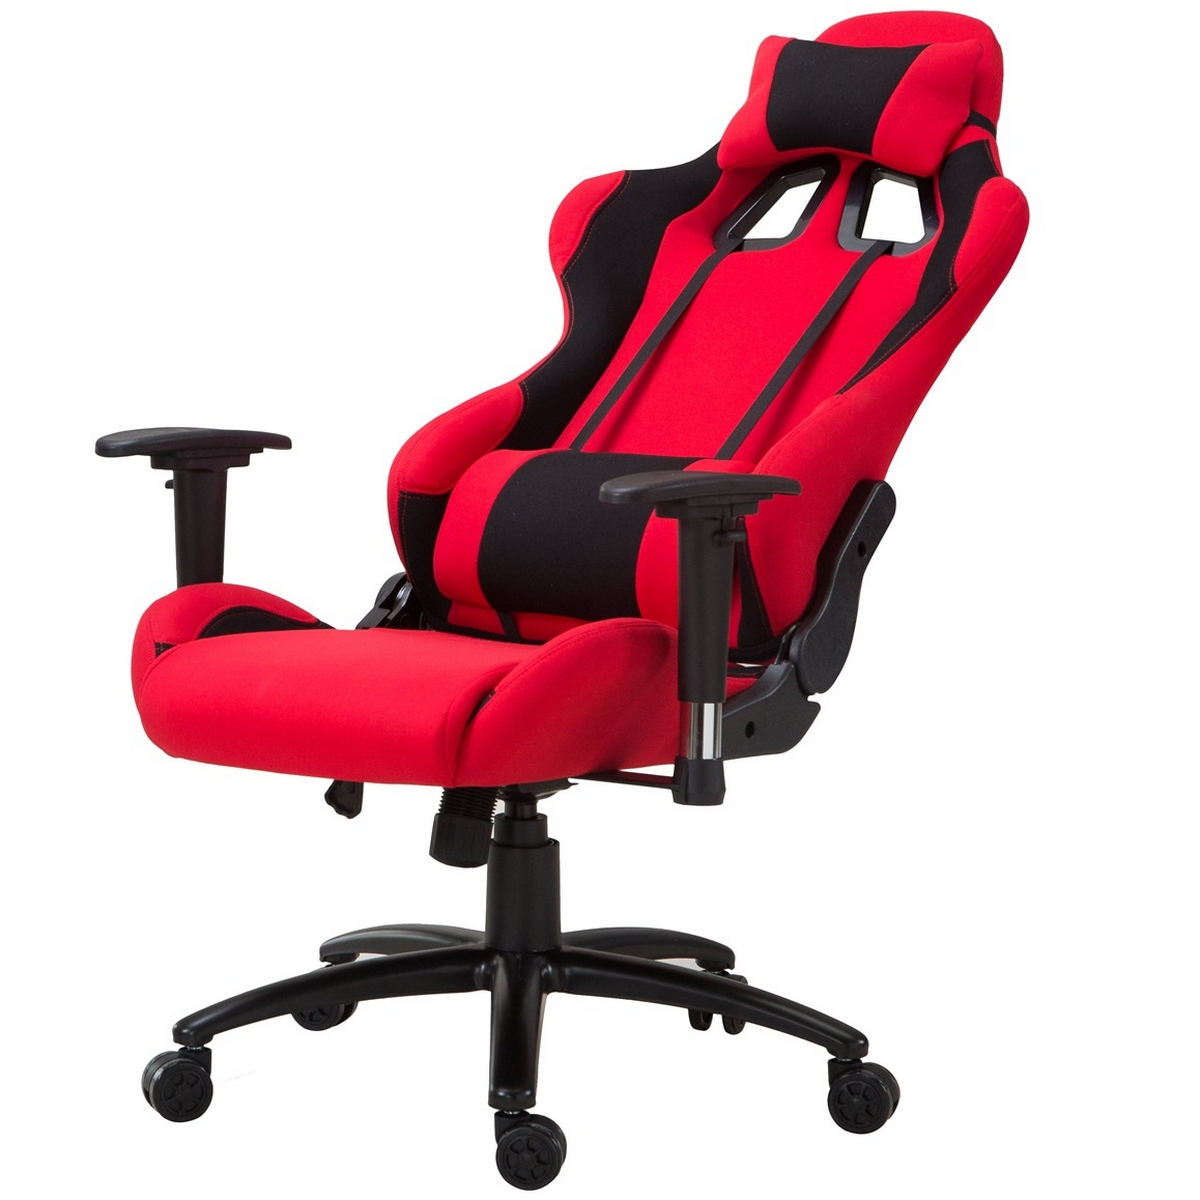 delman b rostuhl racing chair b ro gaming stuhl schreibtischstuhl stoff 02 1016 ebay. Black Bedroom Furniture Sets. Home Design Ideas